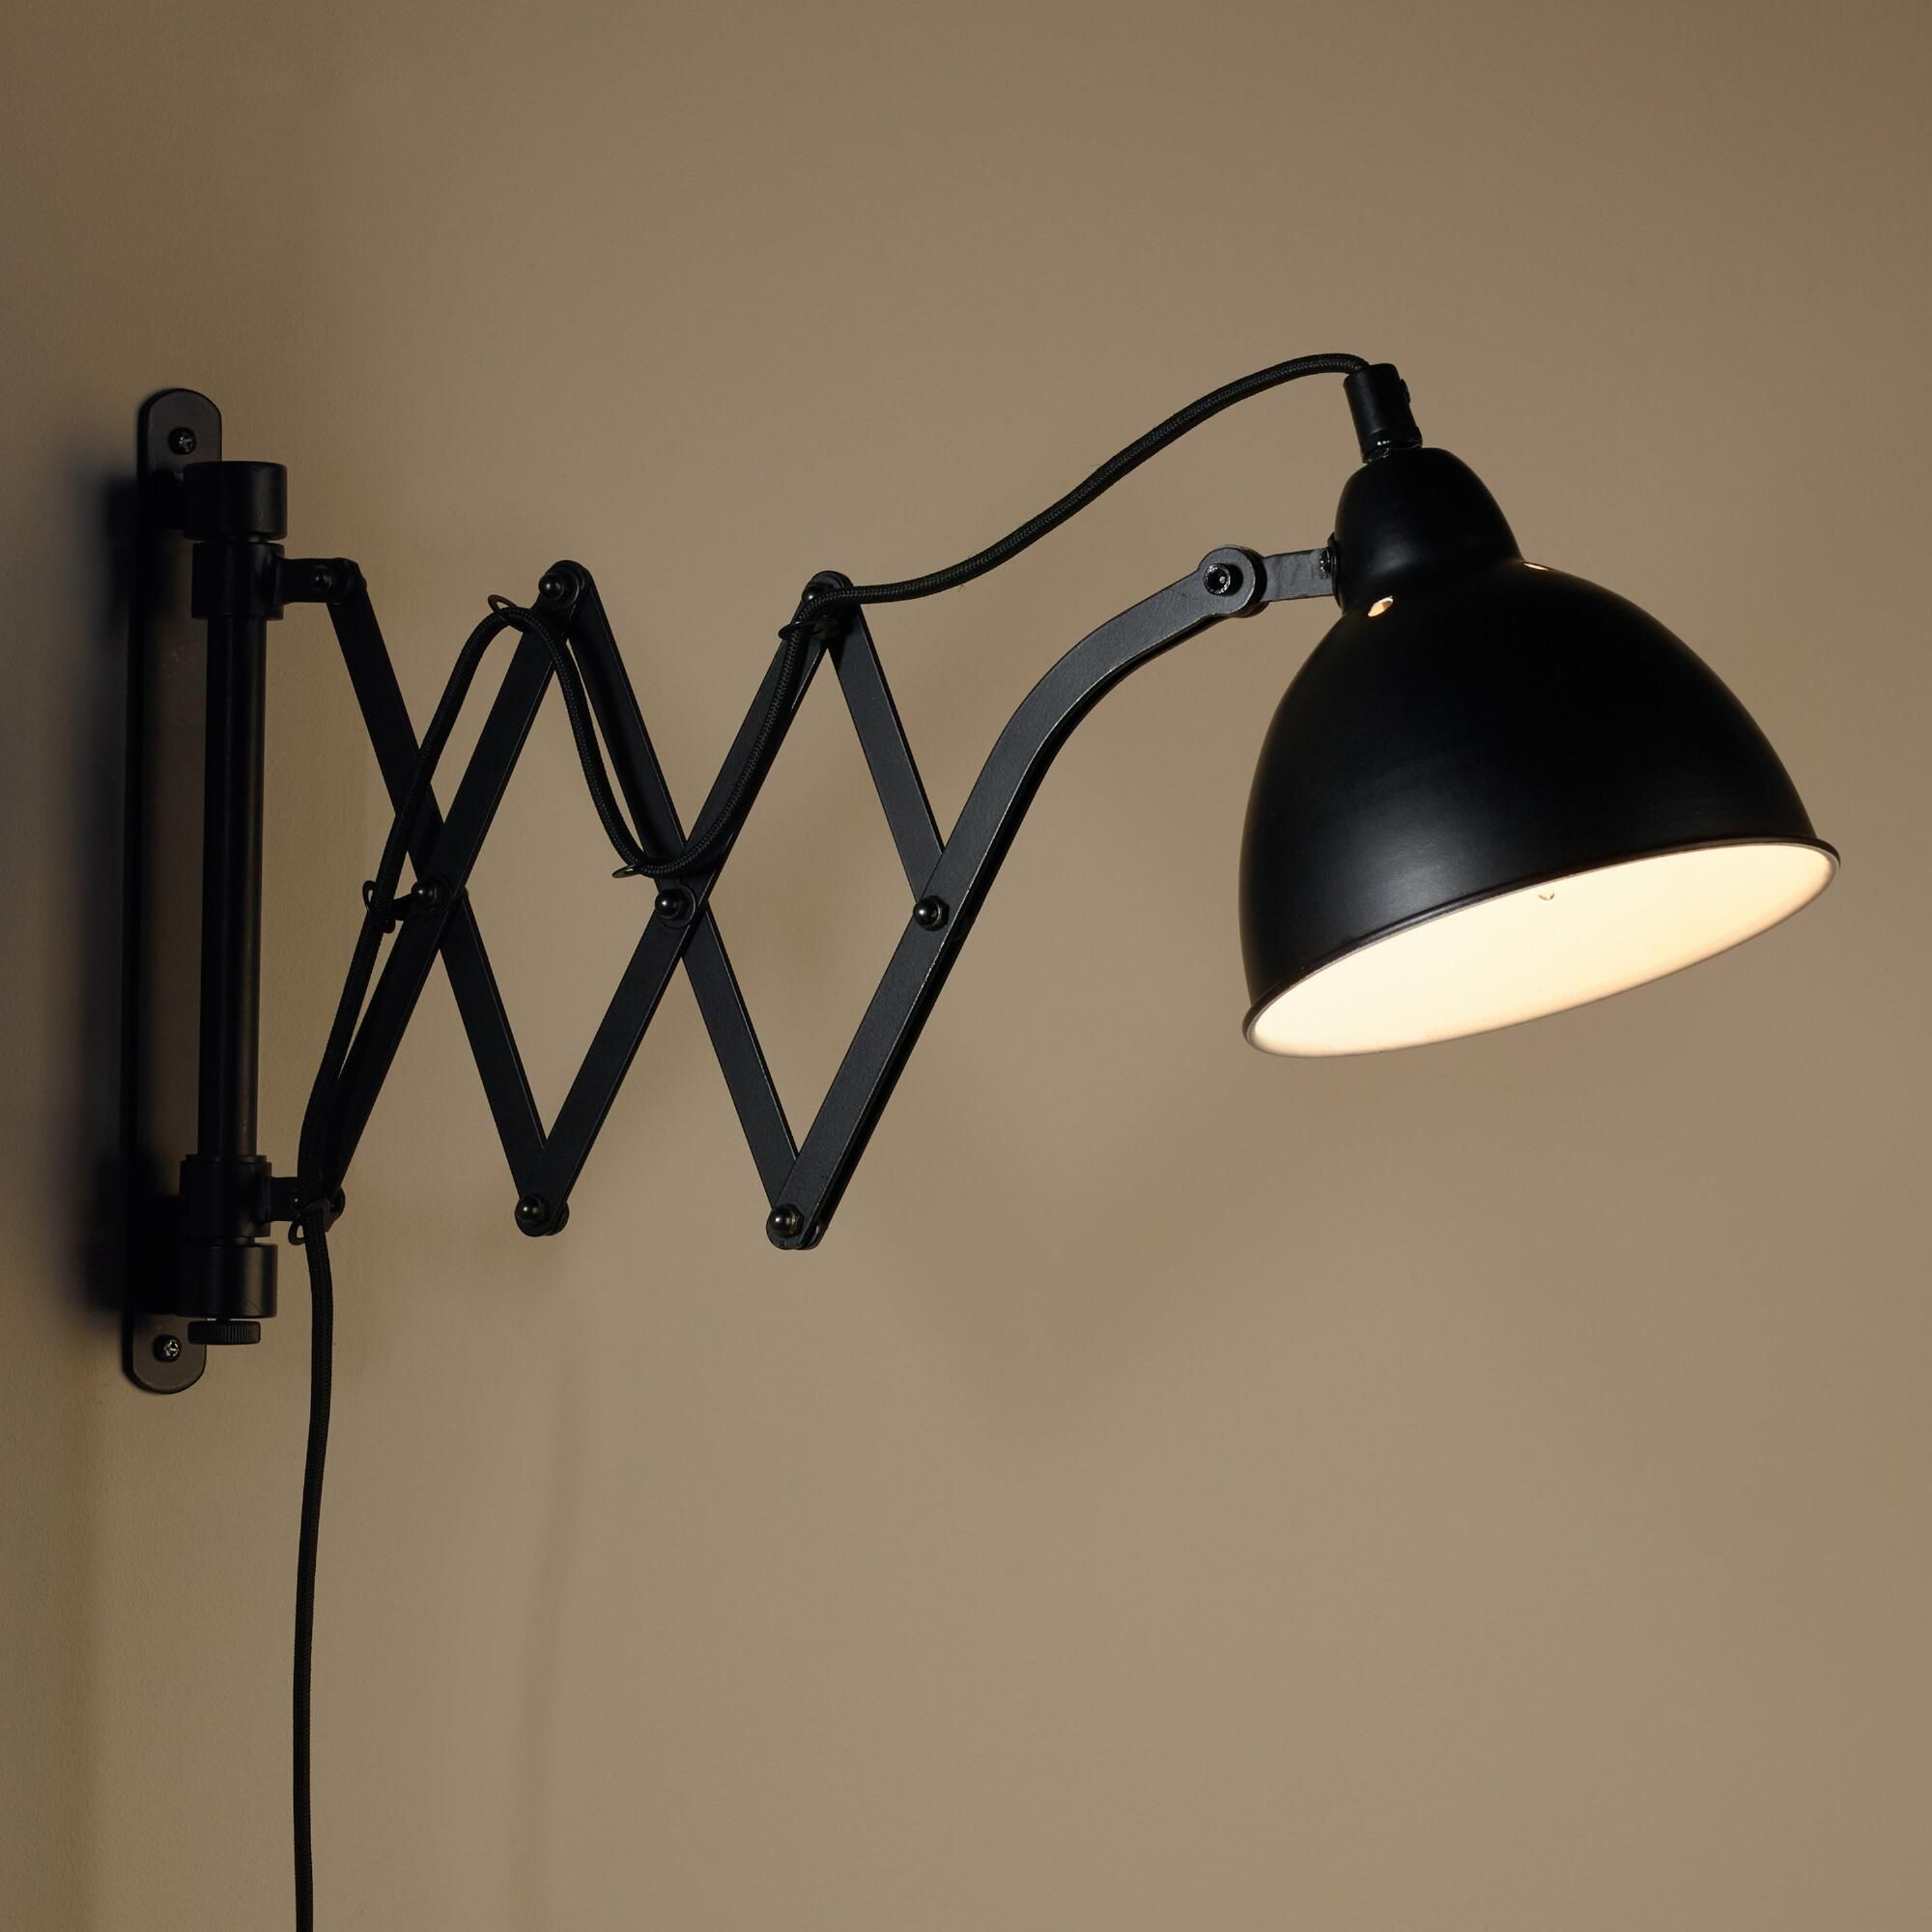 Black Metal Accordion Wall Sconce Wall Mount Reading